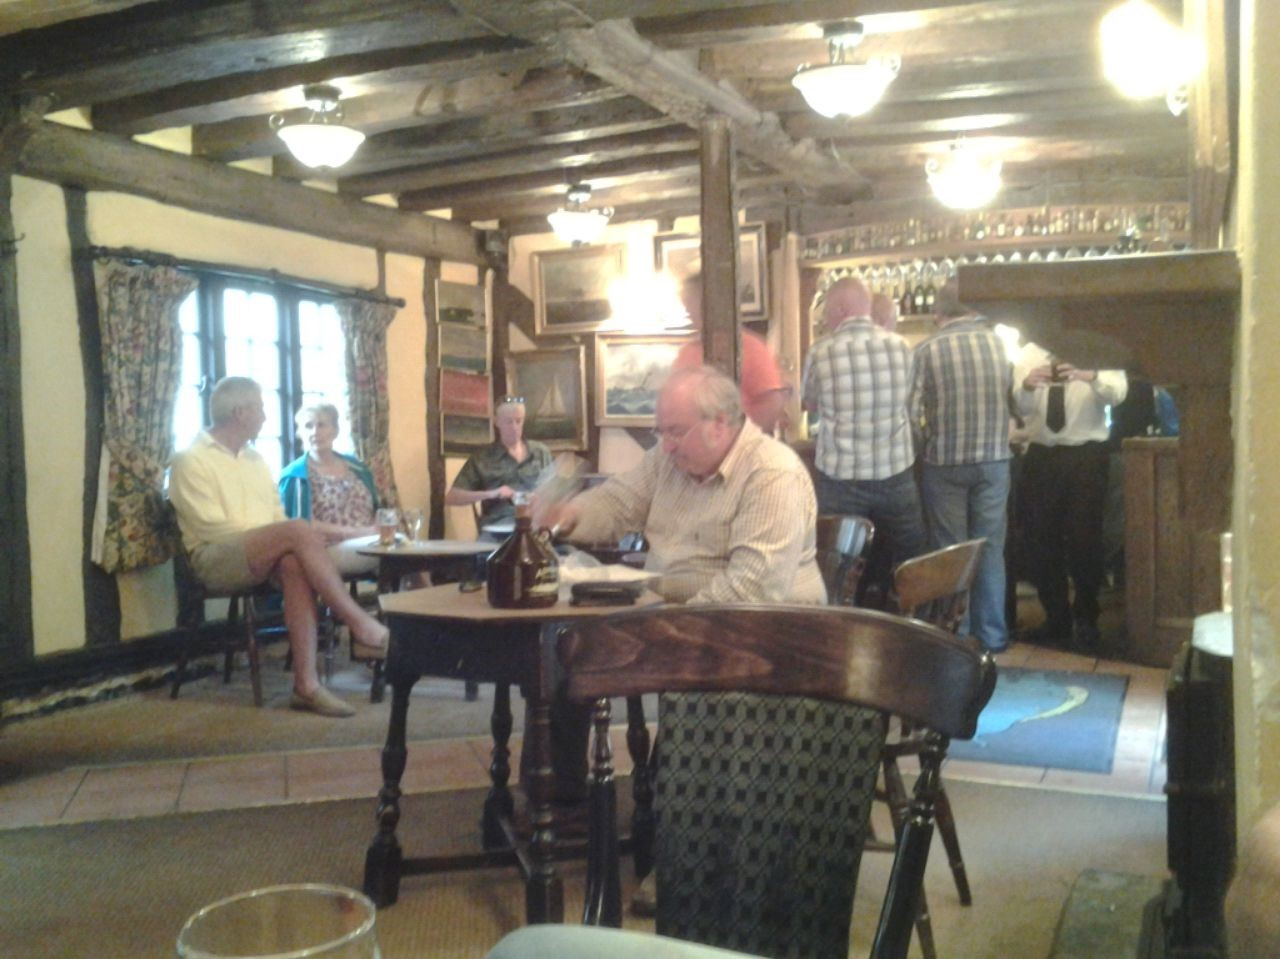 The Blue Boar in Maldon